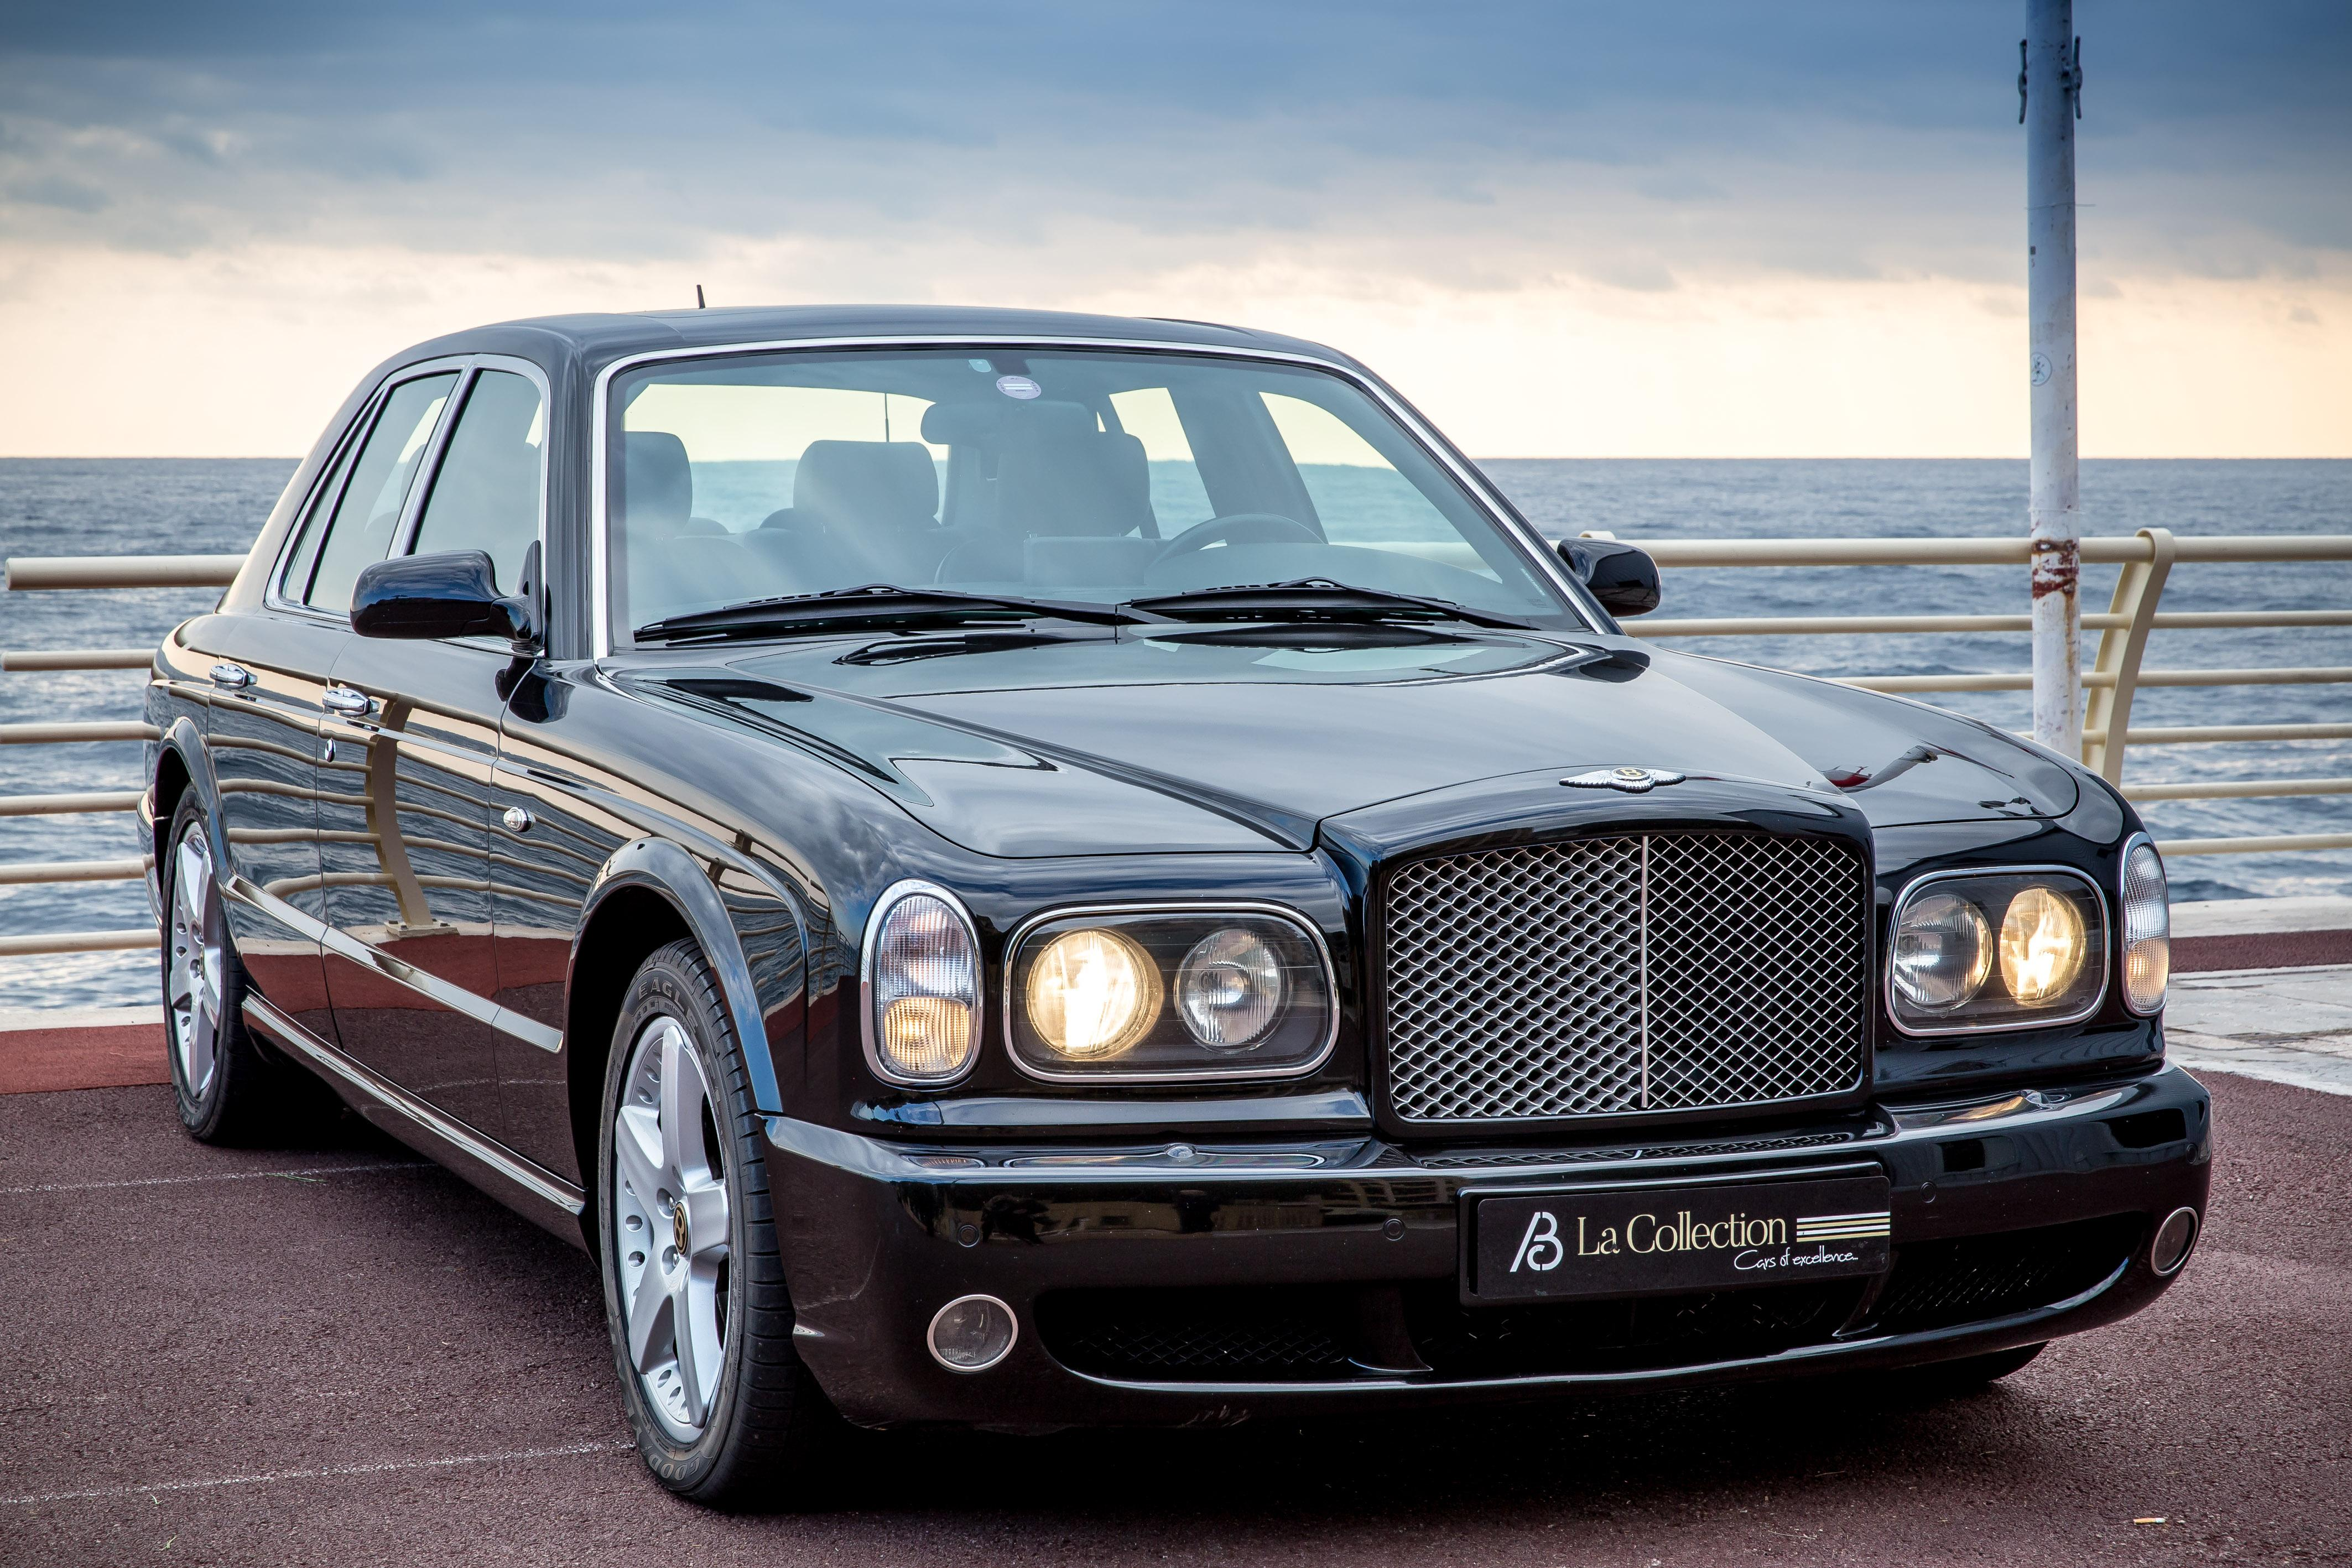 derbyshire for in sale pistonheads arnage bentley classifieds t used cars